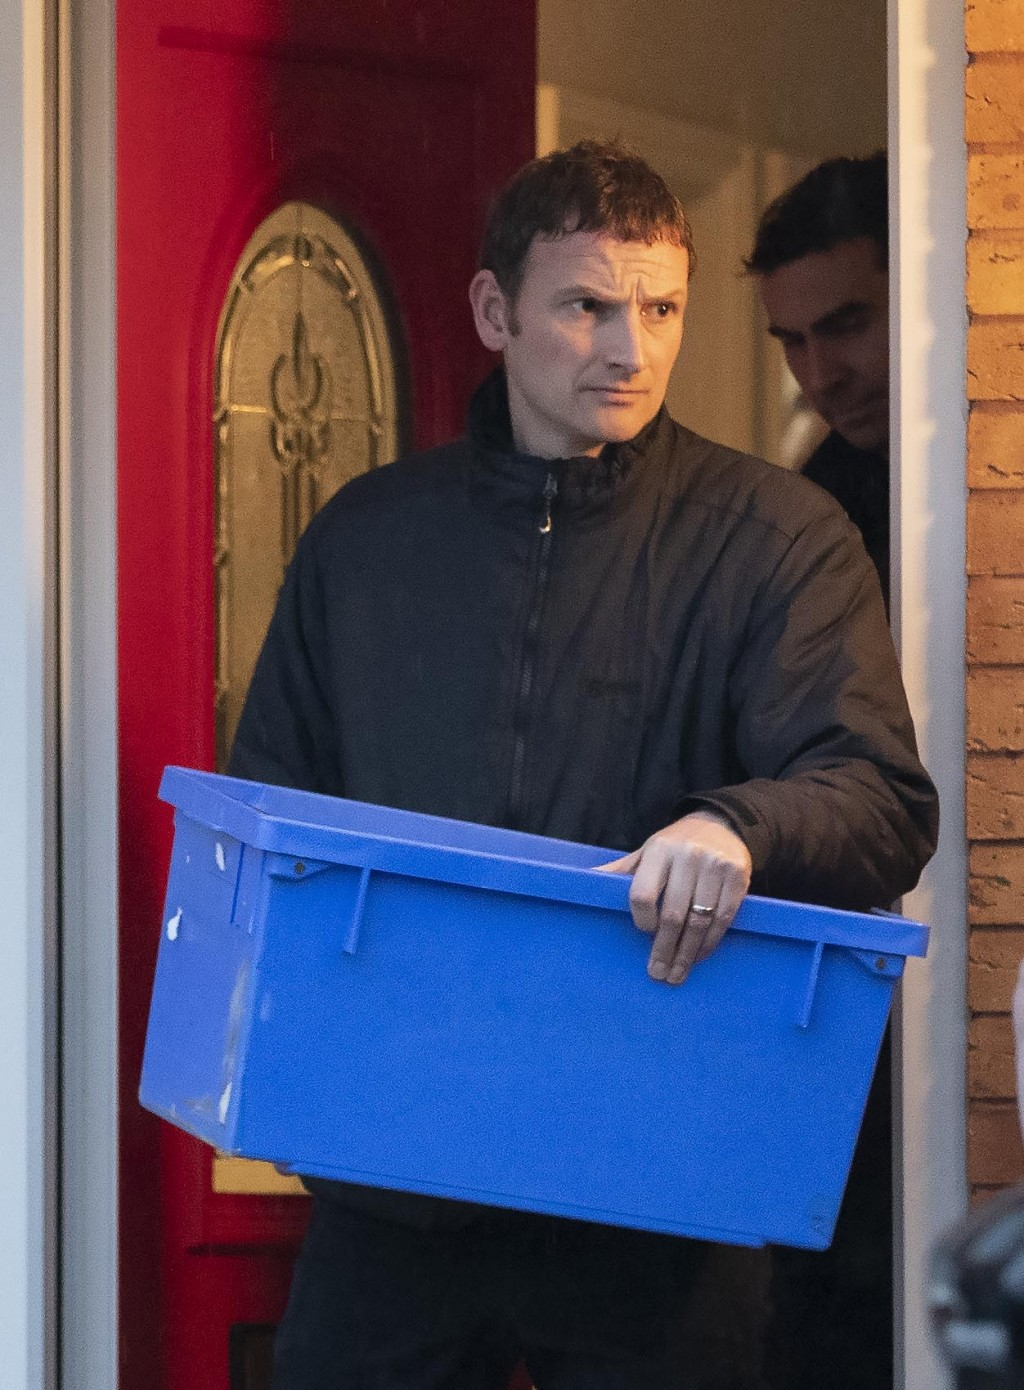 Police leave the home of Joanna and Thomas Maher with an evidence box at Wiltshire close in Warrington, Cheshire, Friday, Oct. 25, 2019, after a man a...